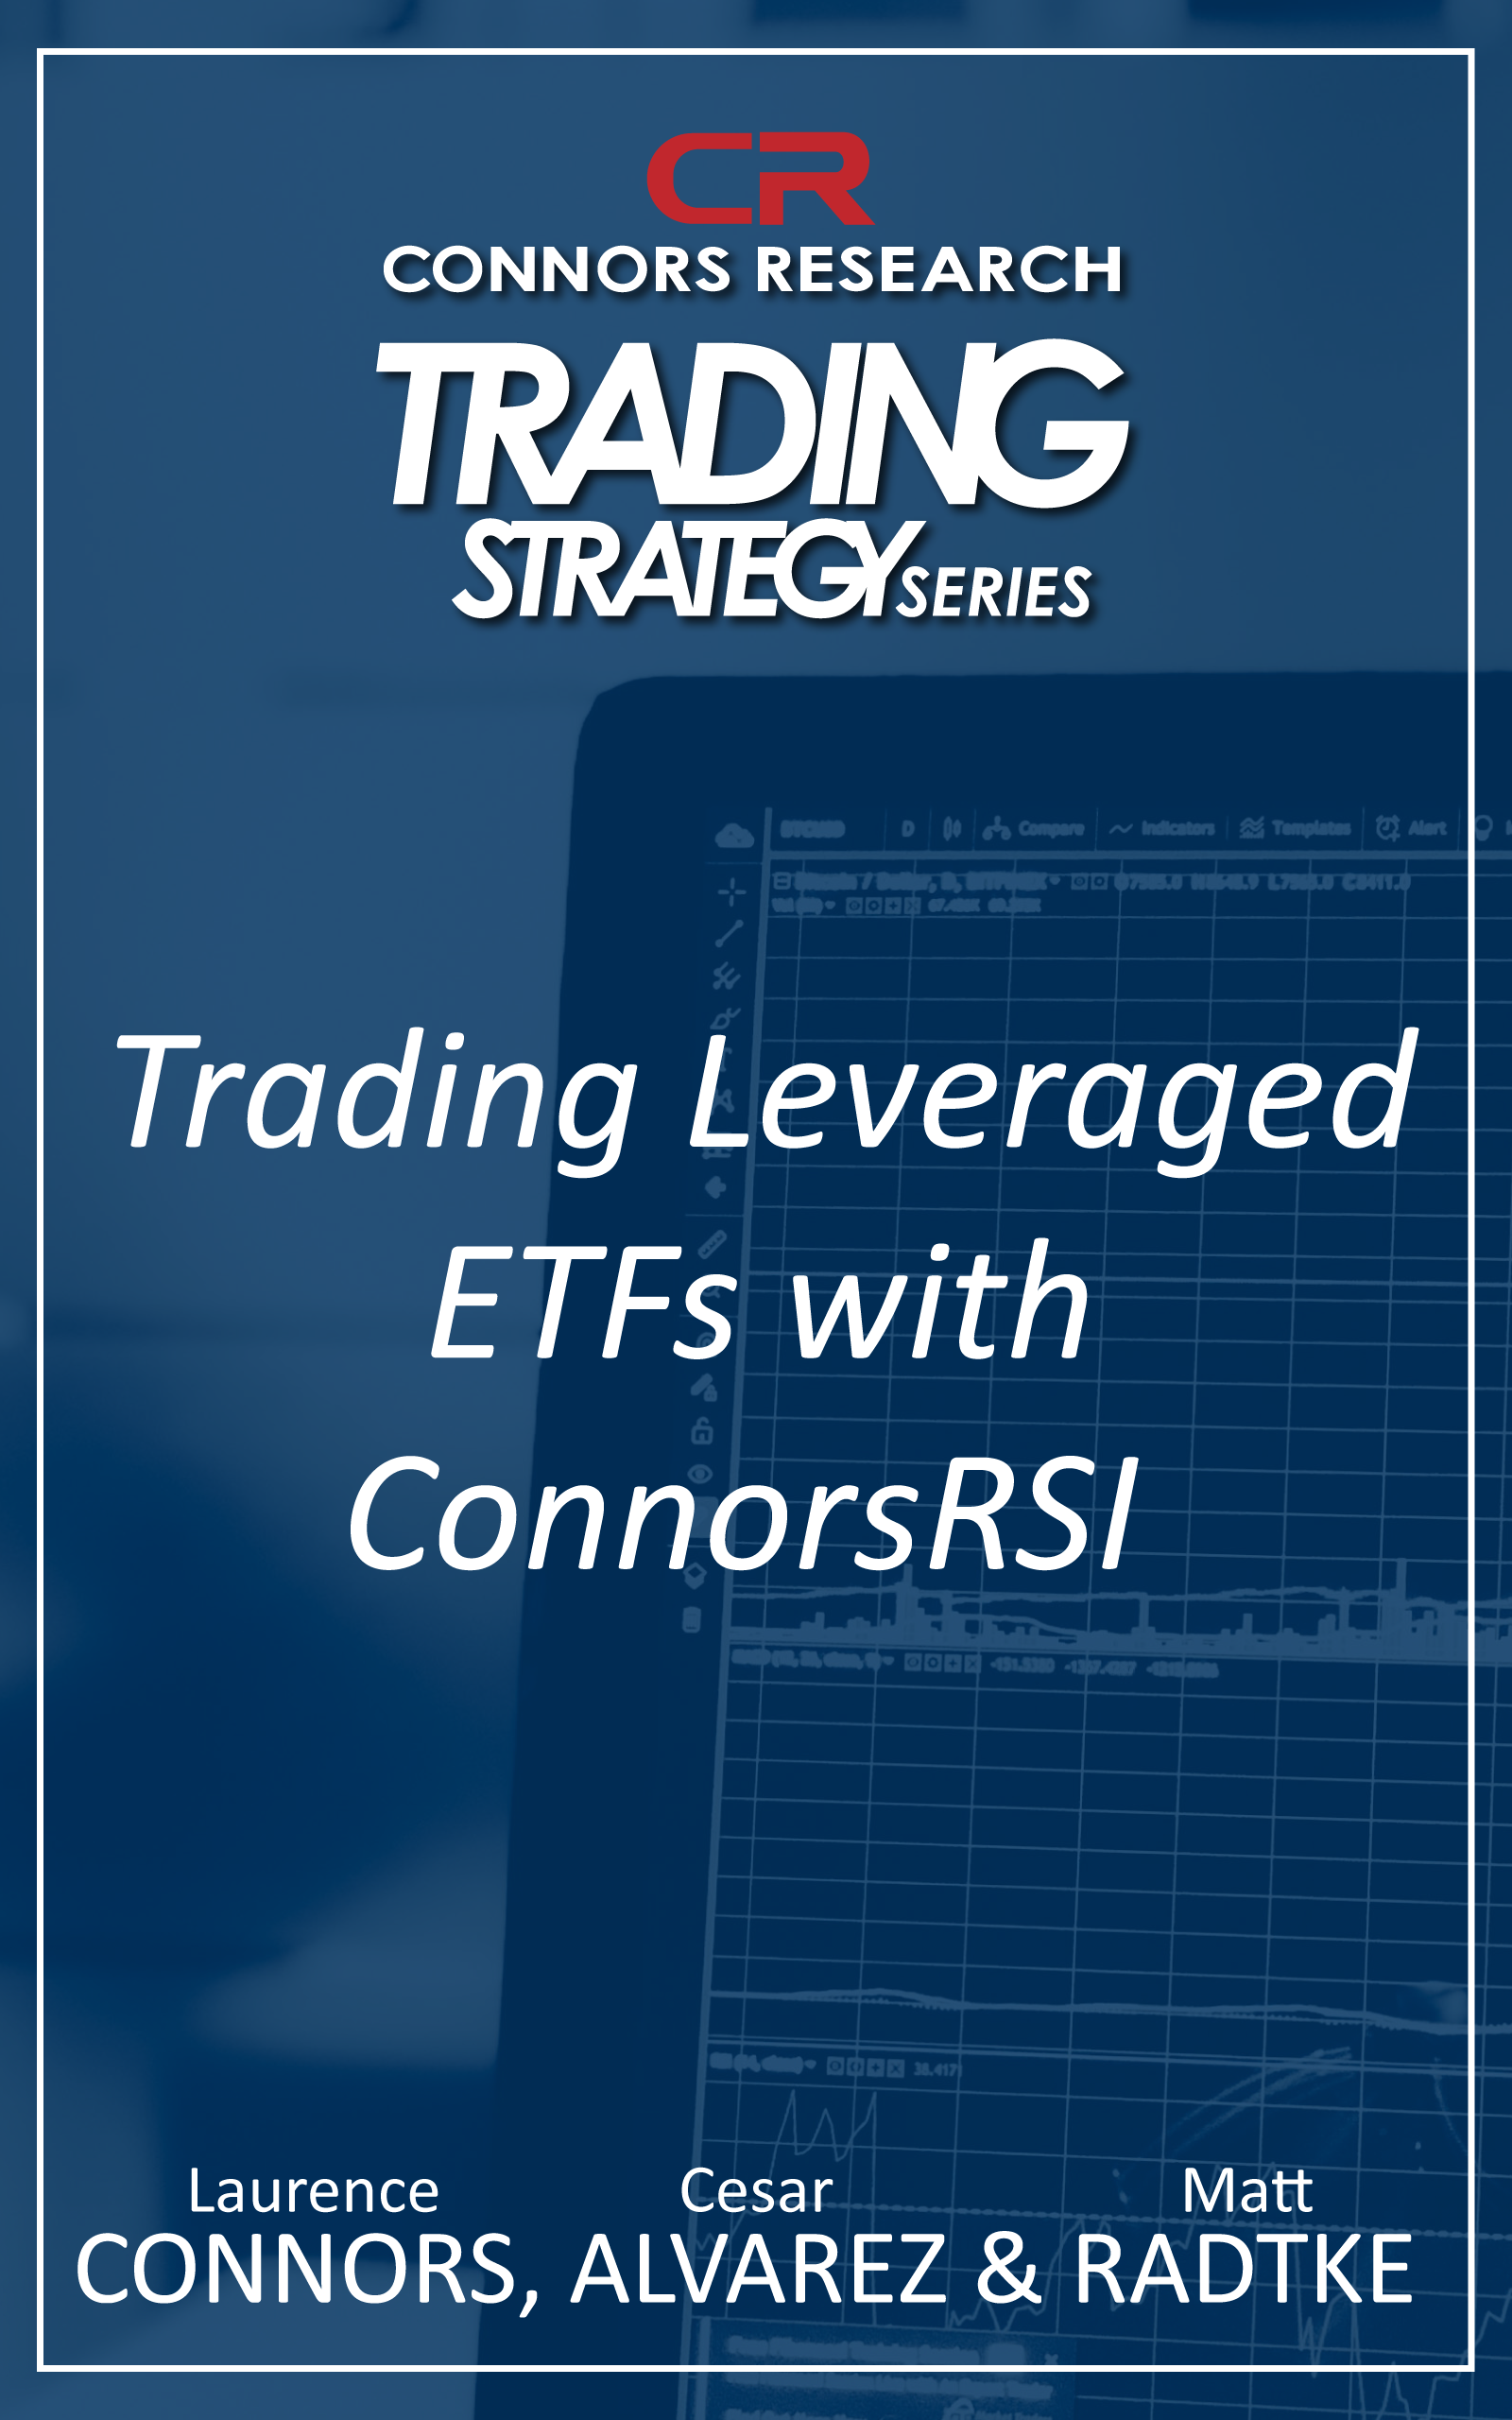 Connors Research Trading Strategy Series: Trading Leveraged ETFs With ConnorsRSI BOO-CRLE-D